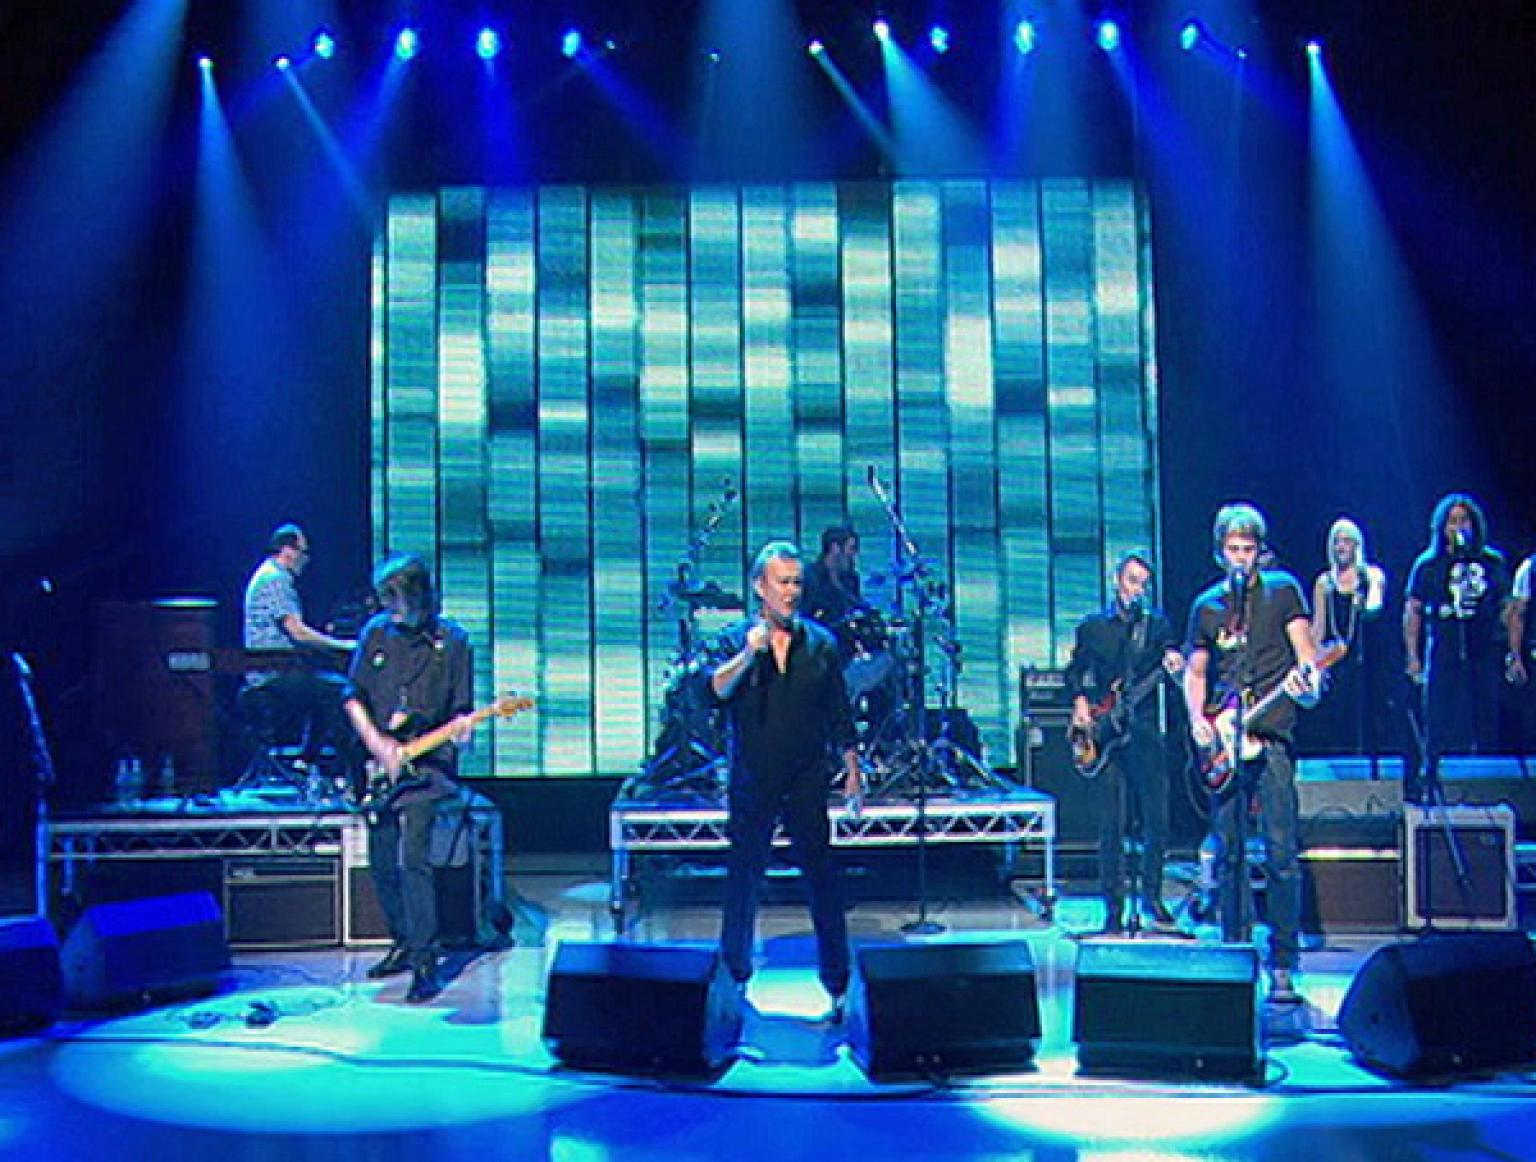 Wide shot of Jimmy Barnes (centre) on a TV studio stage surrounded by band members. The TV studio is flooded in different shades of blue lights. Barnes is dressed all in black and holding a microphone.